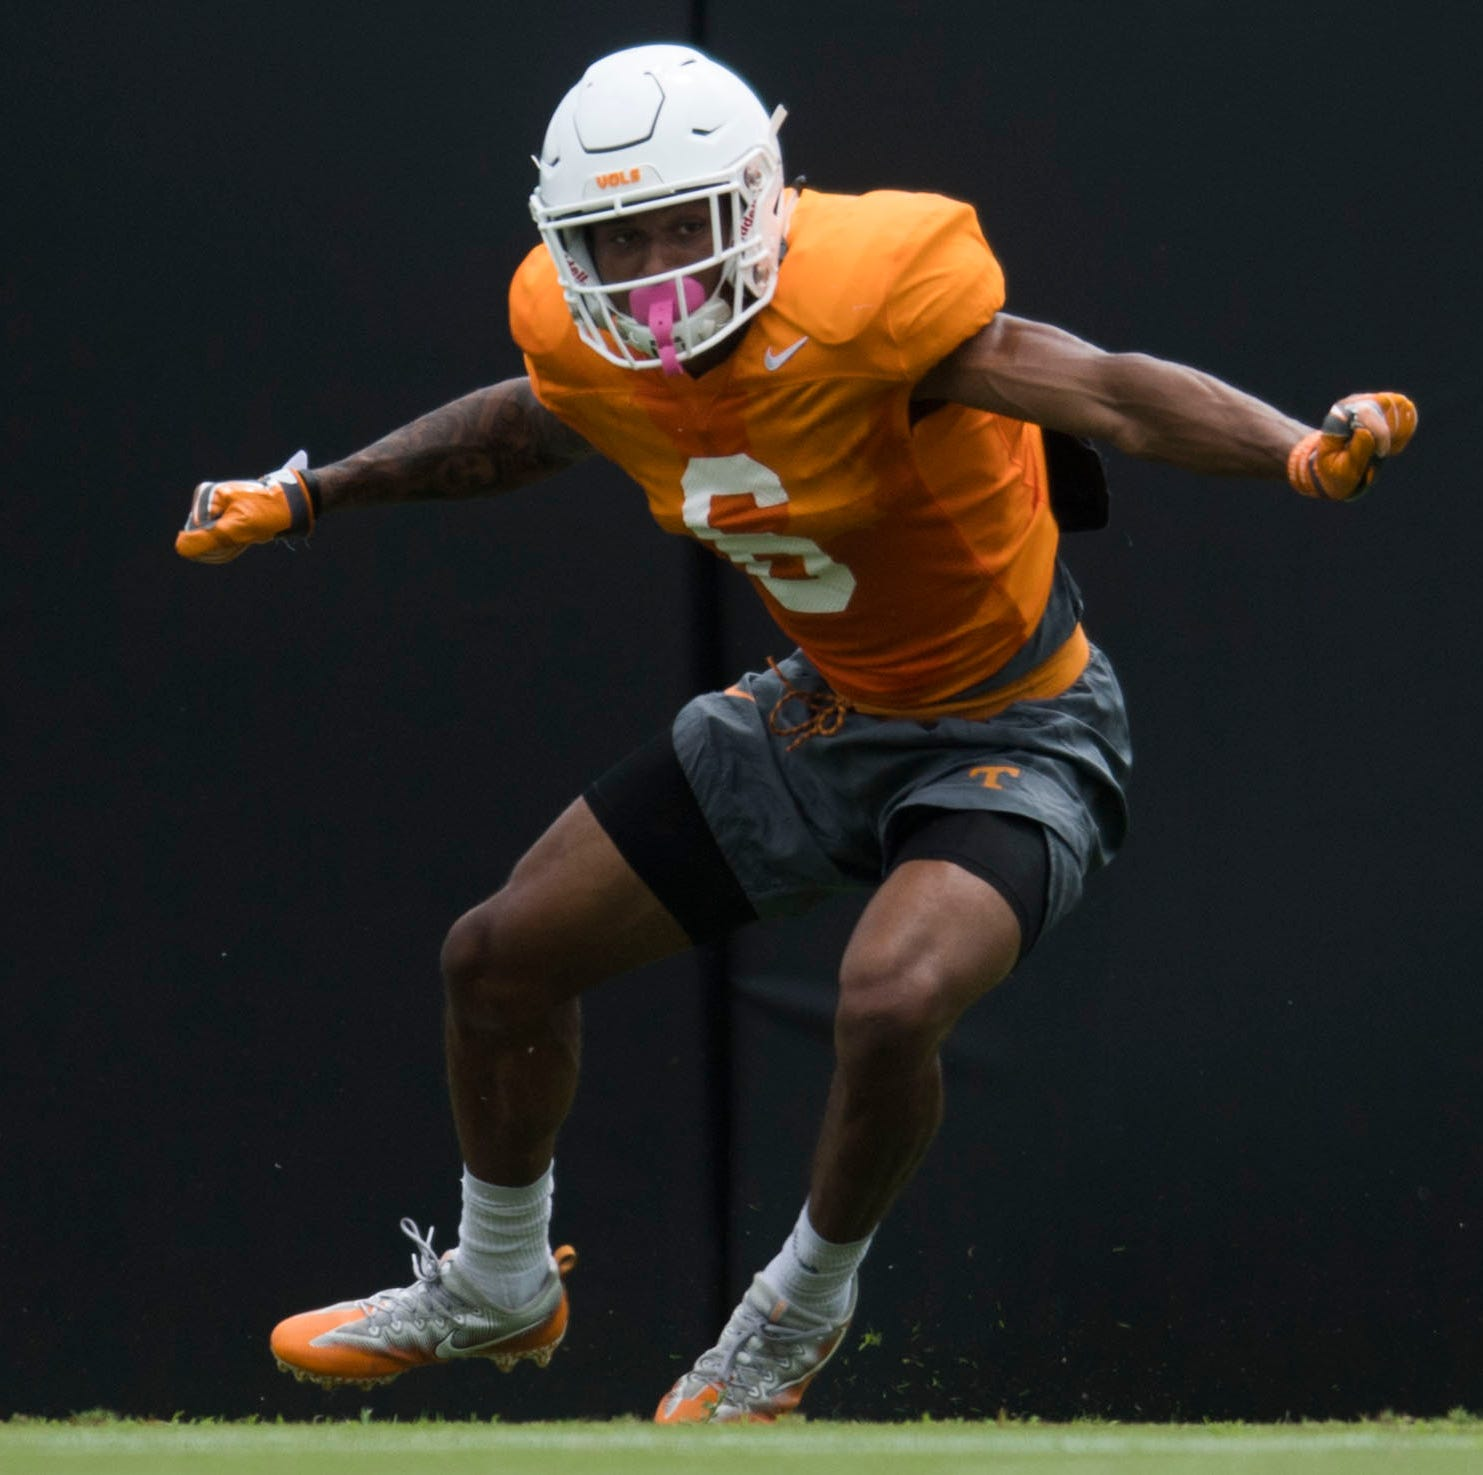 Mike Strange: A shift could make the difference for Alontae Taylor, and for Vols